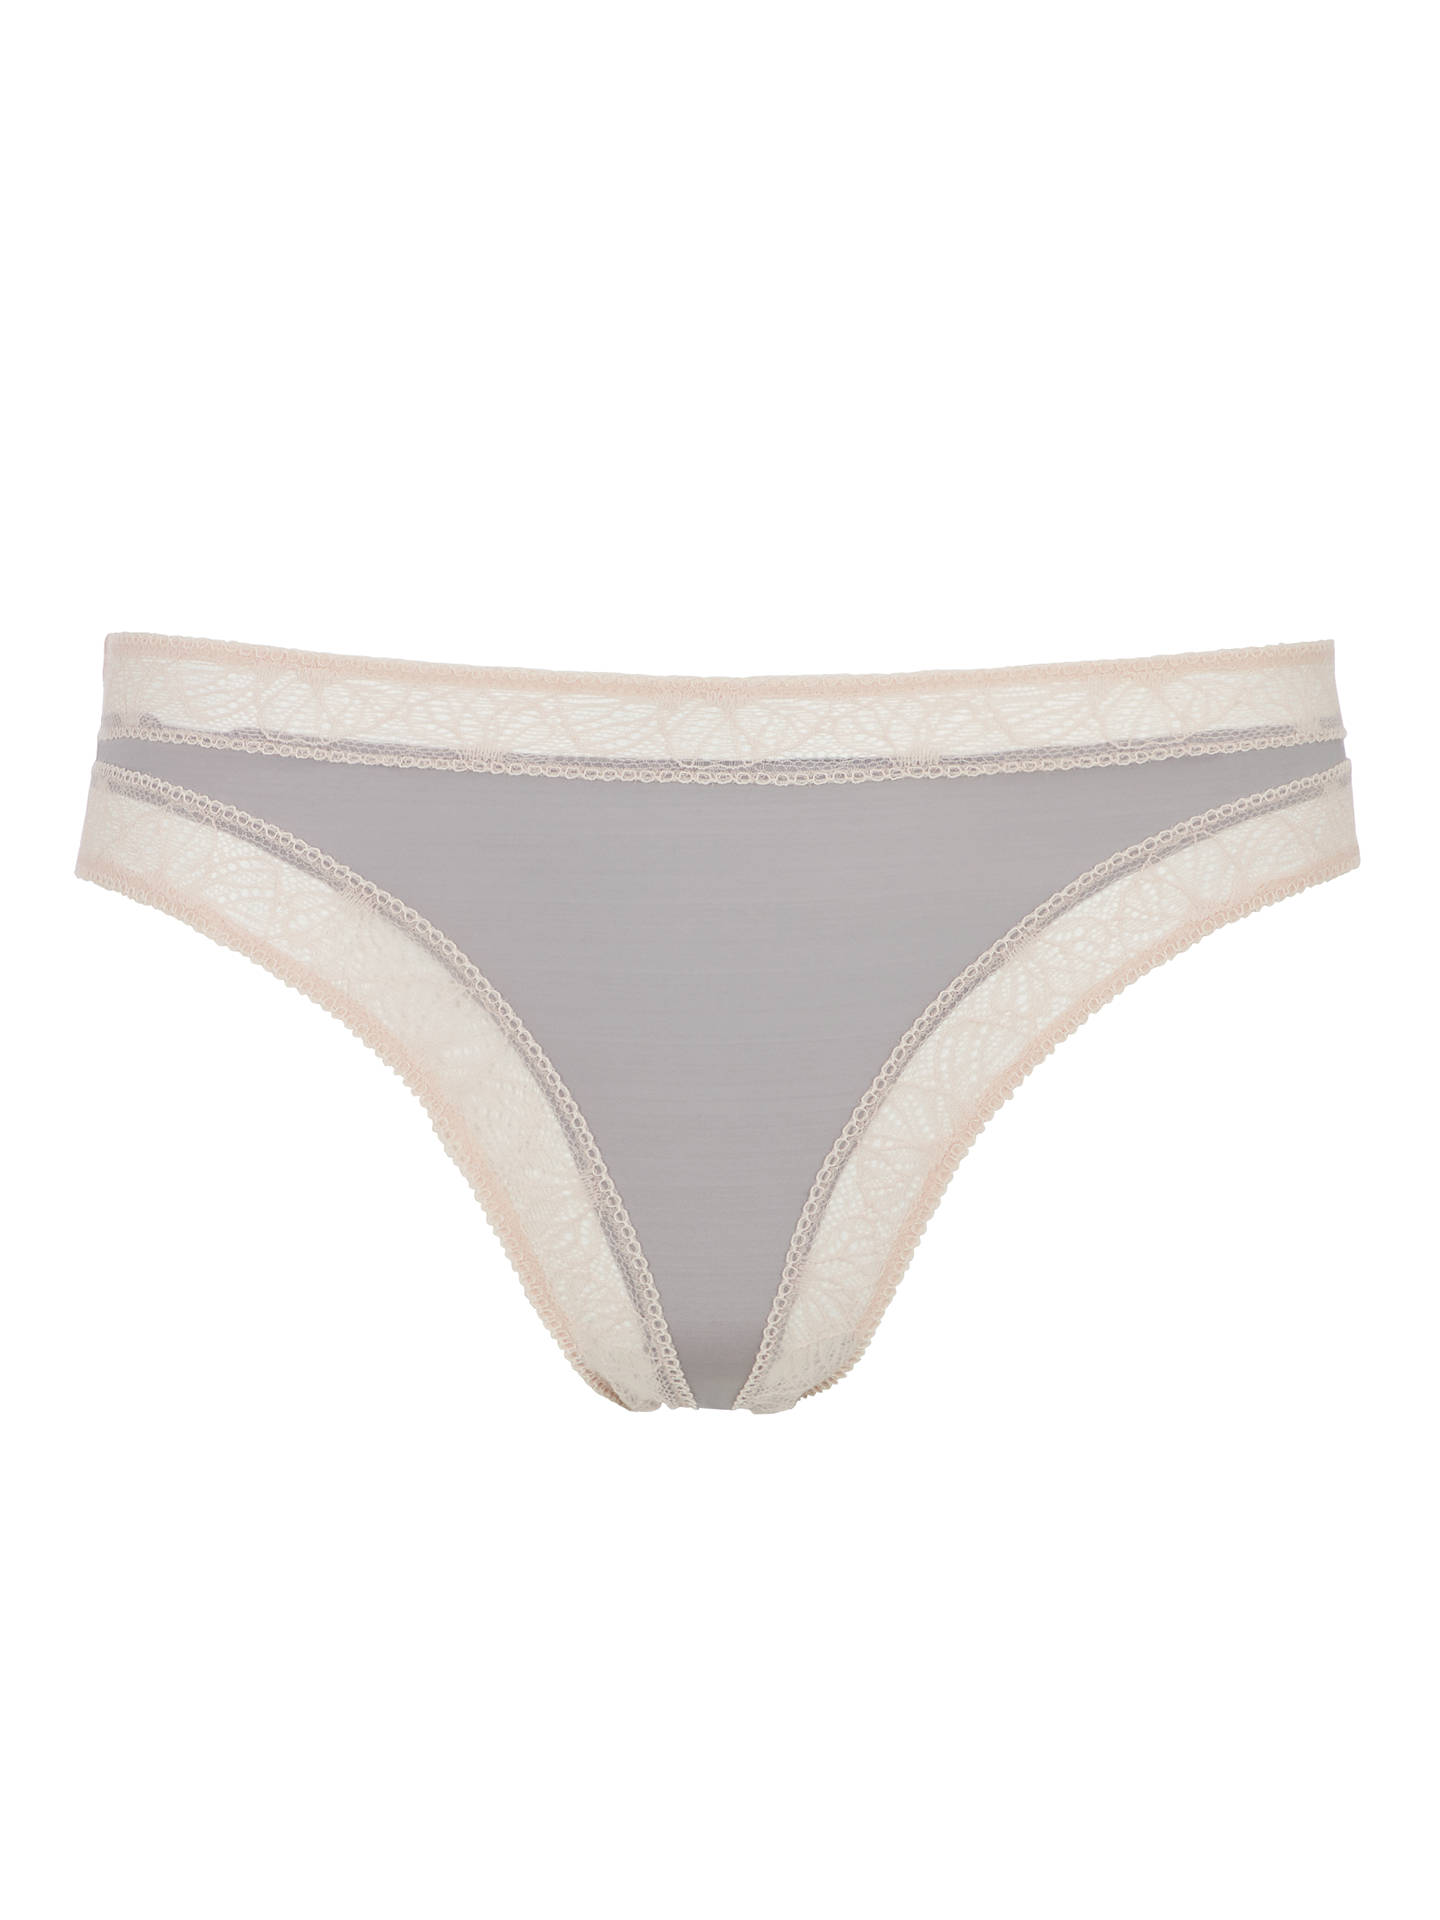 BuyAND/OR Phoebe Lace Trim Briefs, Grey, 12 Online at johnlewis.com